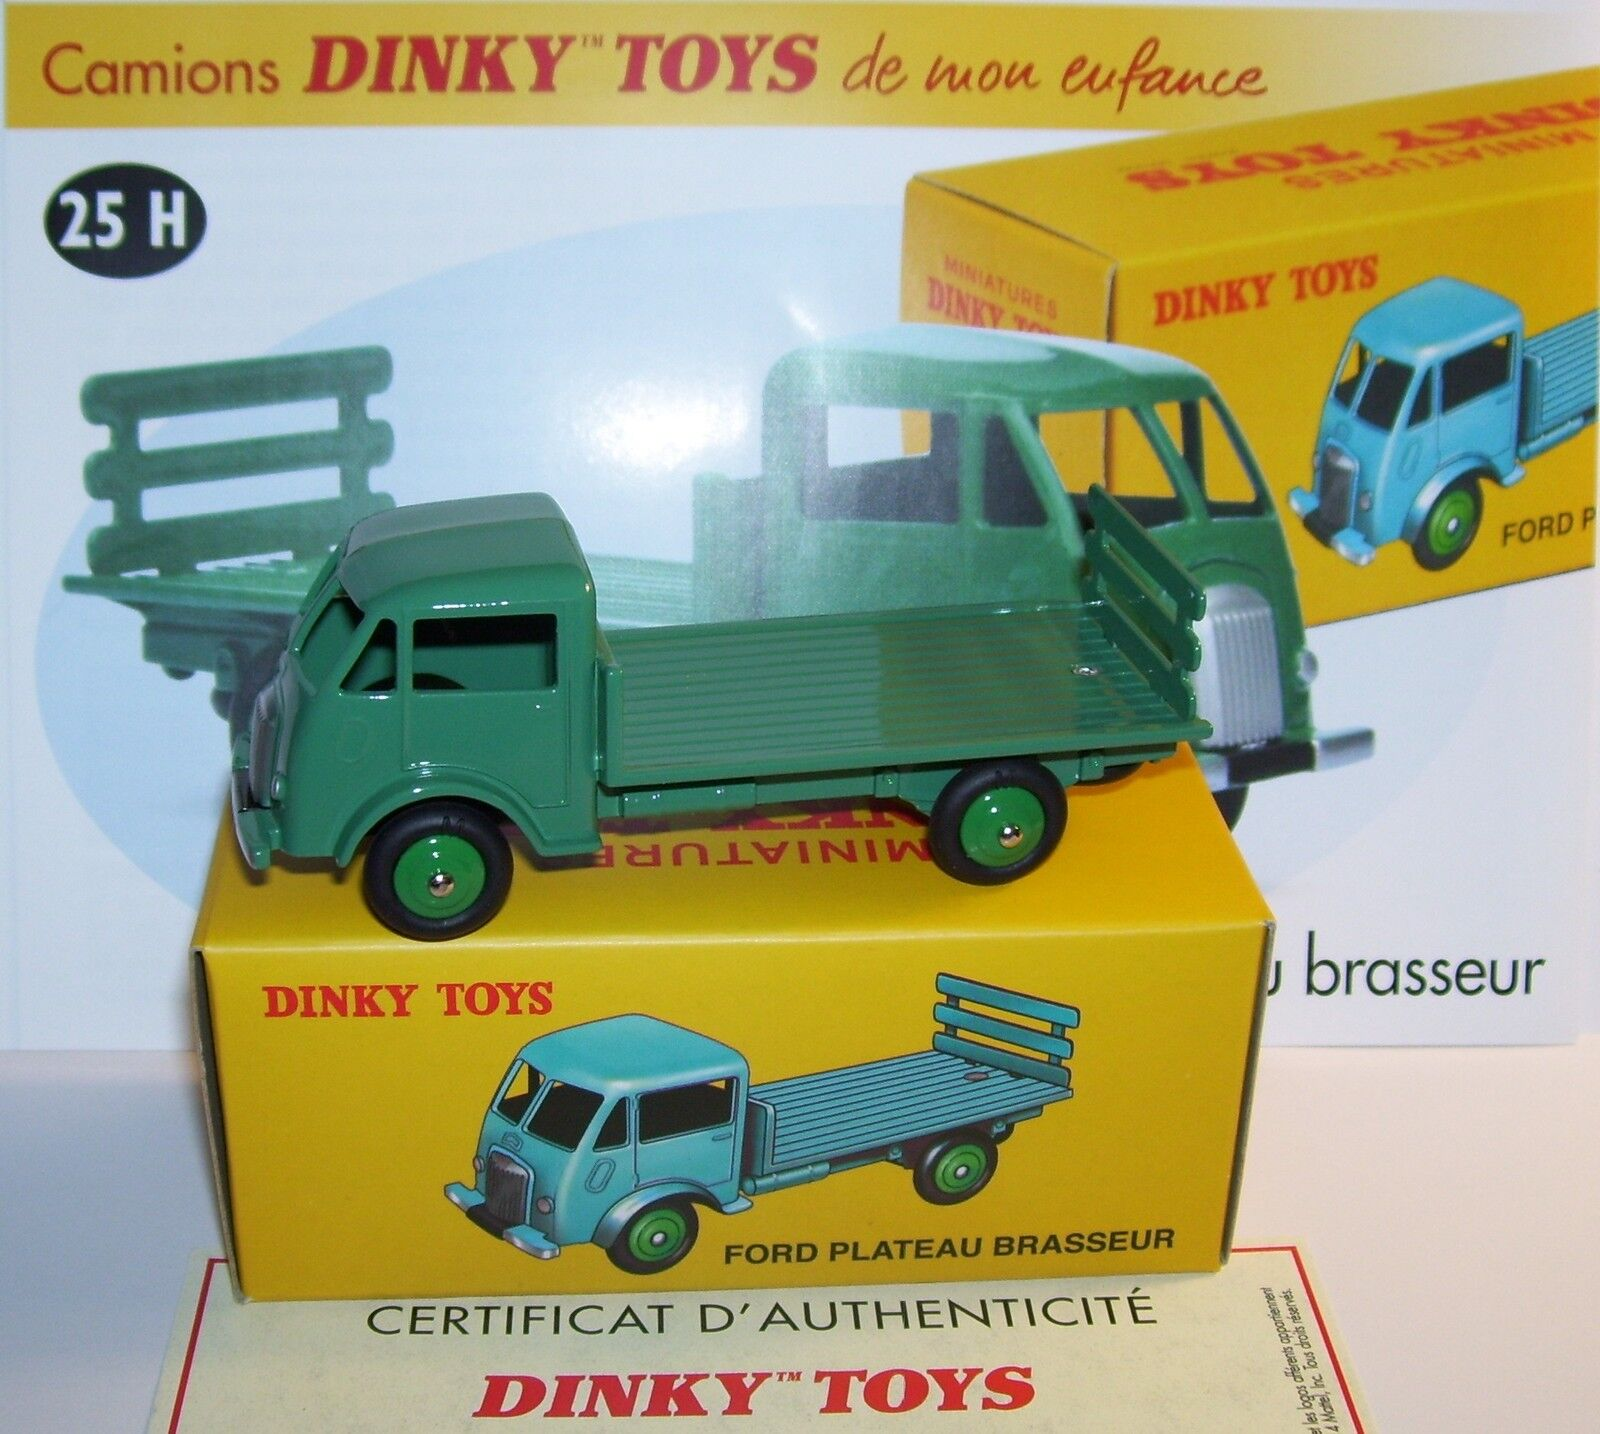 REEDITION DINKY TOYS ATLAS FORD PLATEAU BRASSEUR REF 25 H Grün IN BOX